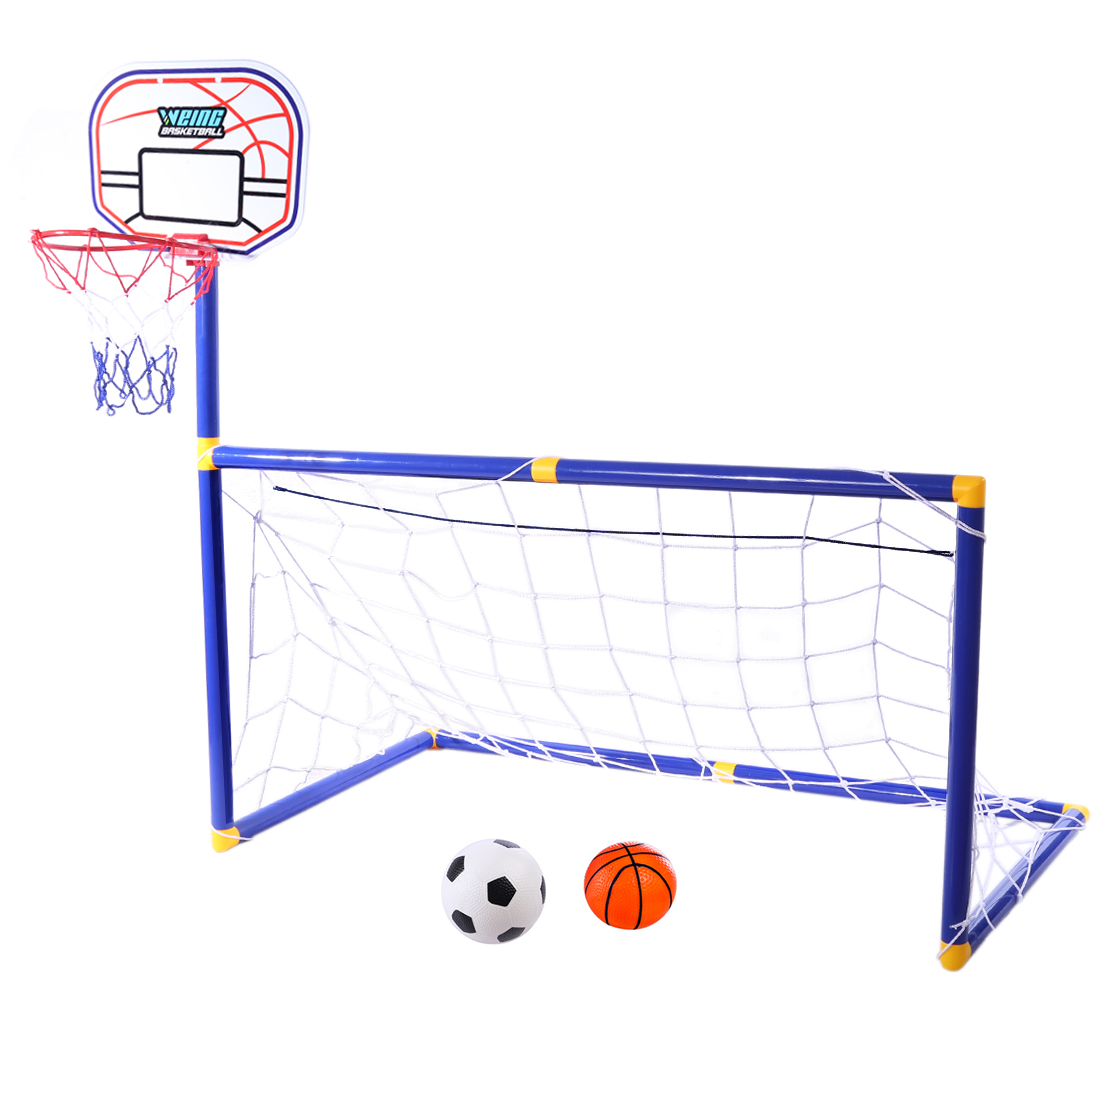 2 In 1 Children Sports Equipment Football Goal Basketball Stands Sports Toys For Kids Children  For Kids Outdoor Toy Hot Sale